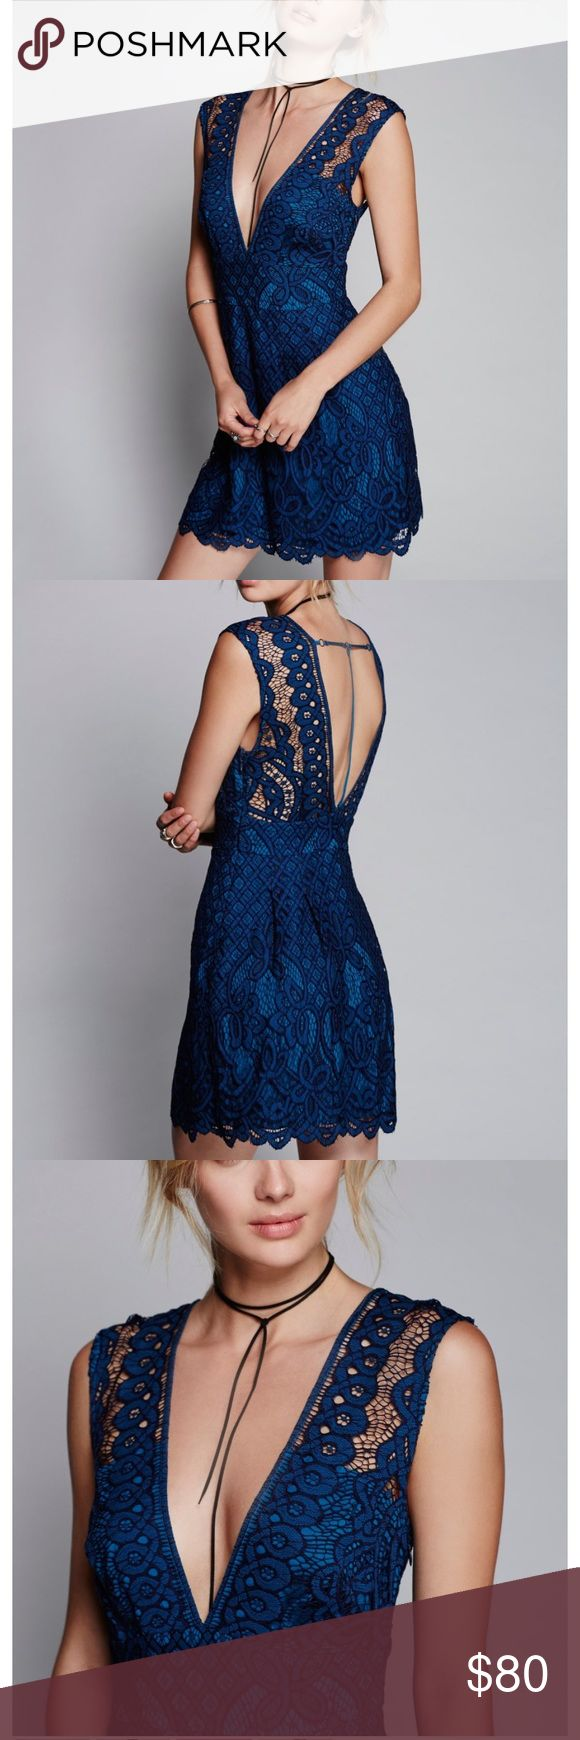 Free people one million lovers dress Lovely lacey dress featuring a front and back plunging V with a cute back strappy detail. Femme fit-and-flare shape. Hidden side zipper closure. Lined. 60% Cotton. 40% Nylon. Hand Wash Cold. Color: blue Free People Dresses Mini